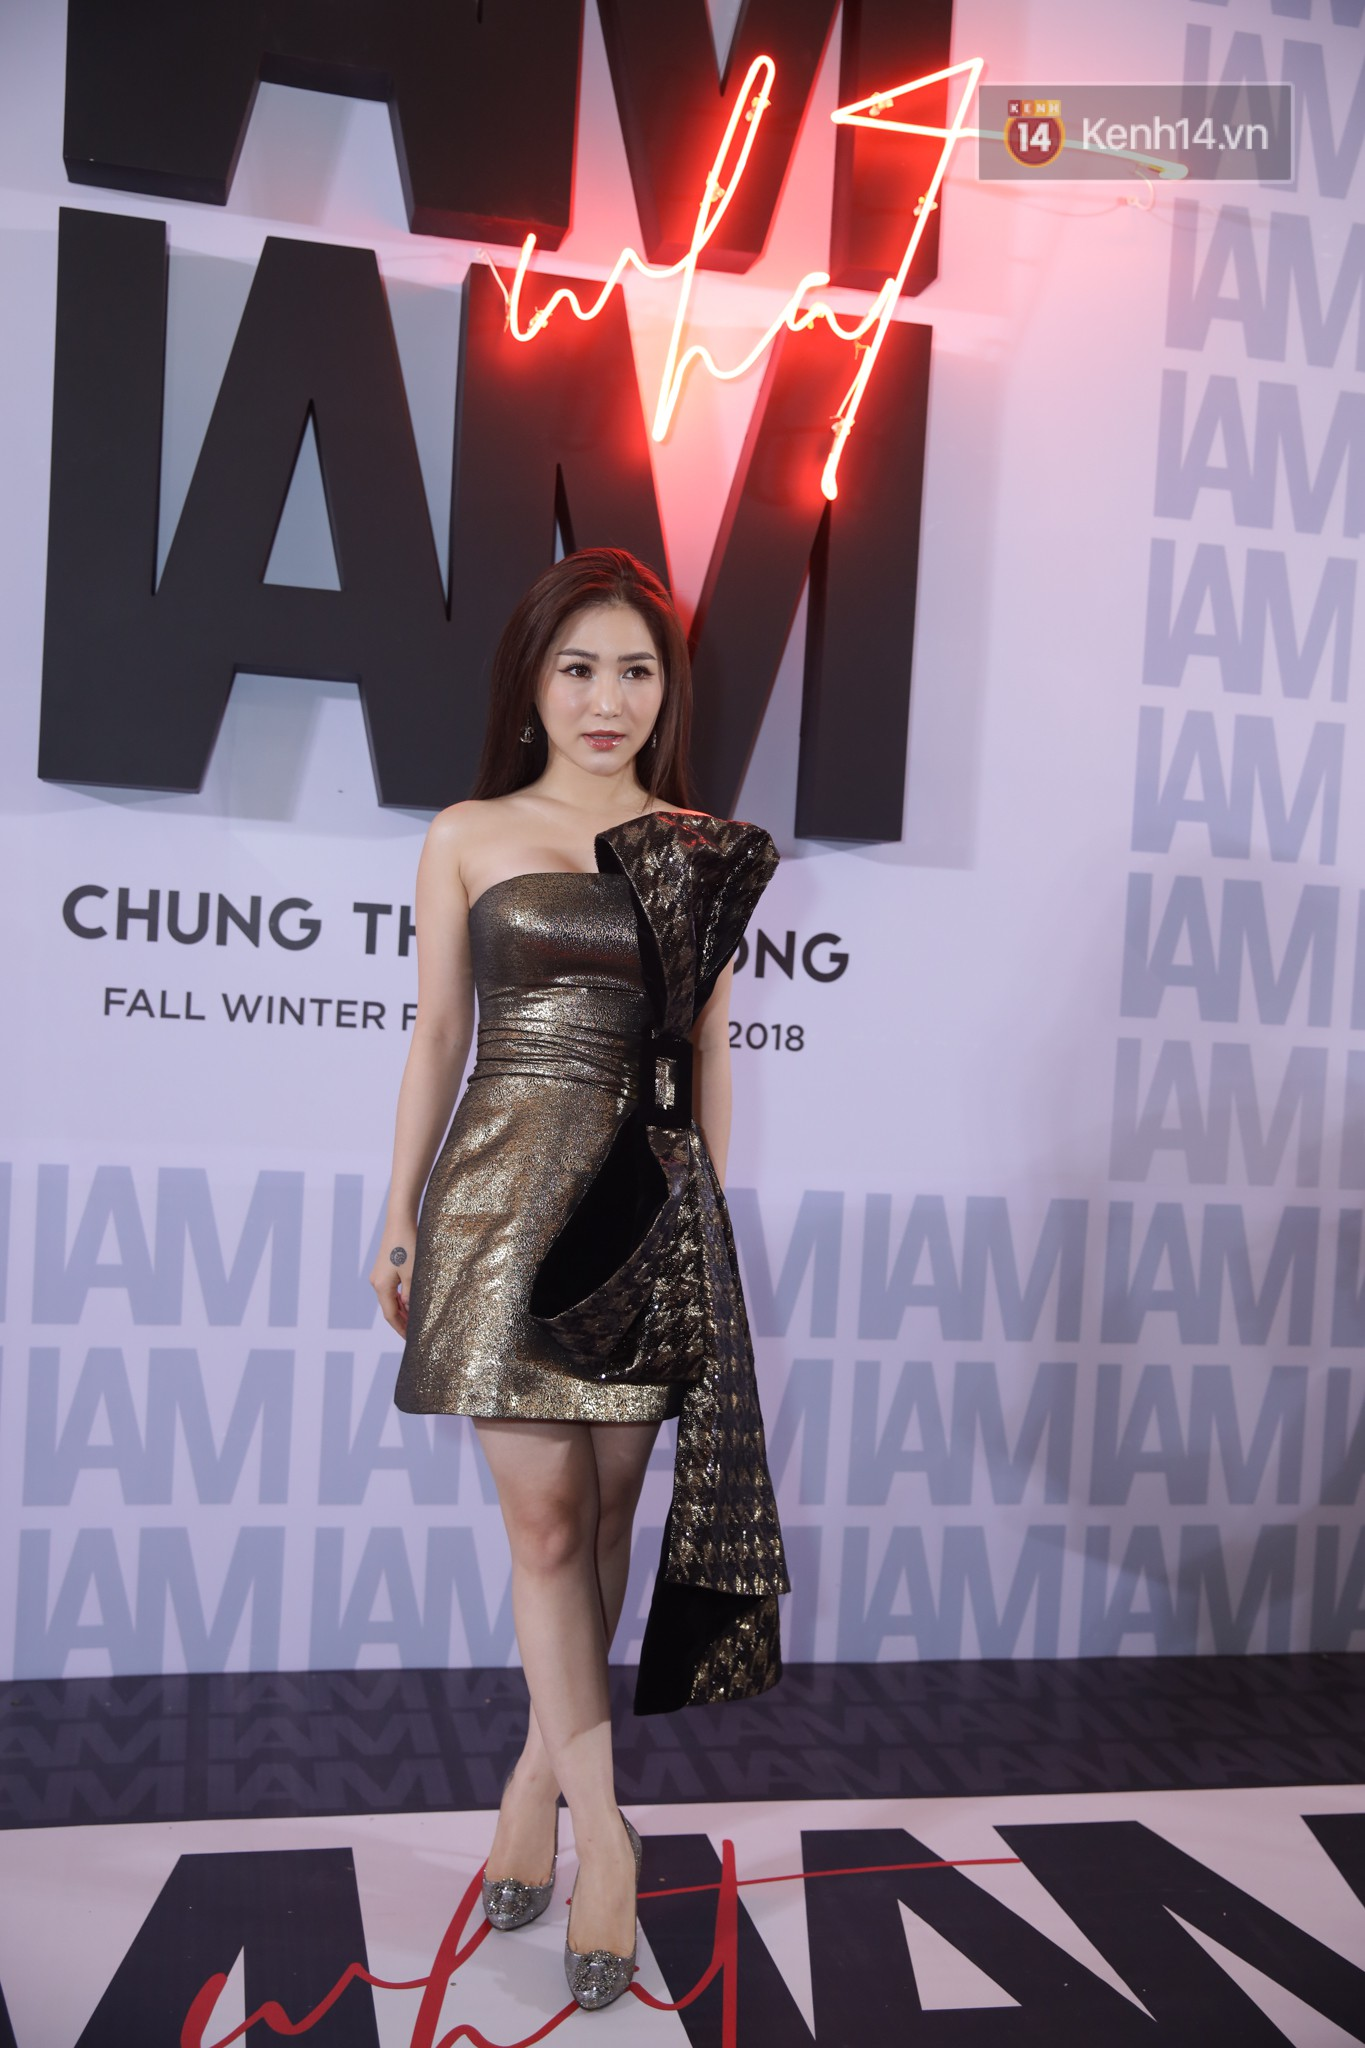 The red carpet Chung Thanh Phong show: It was able to test strange styles, as Quỳnh Anh Shyn caught birds with rain - Photo 14.